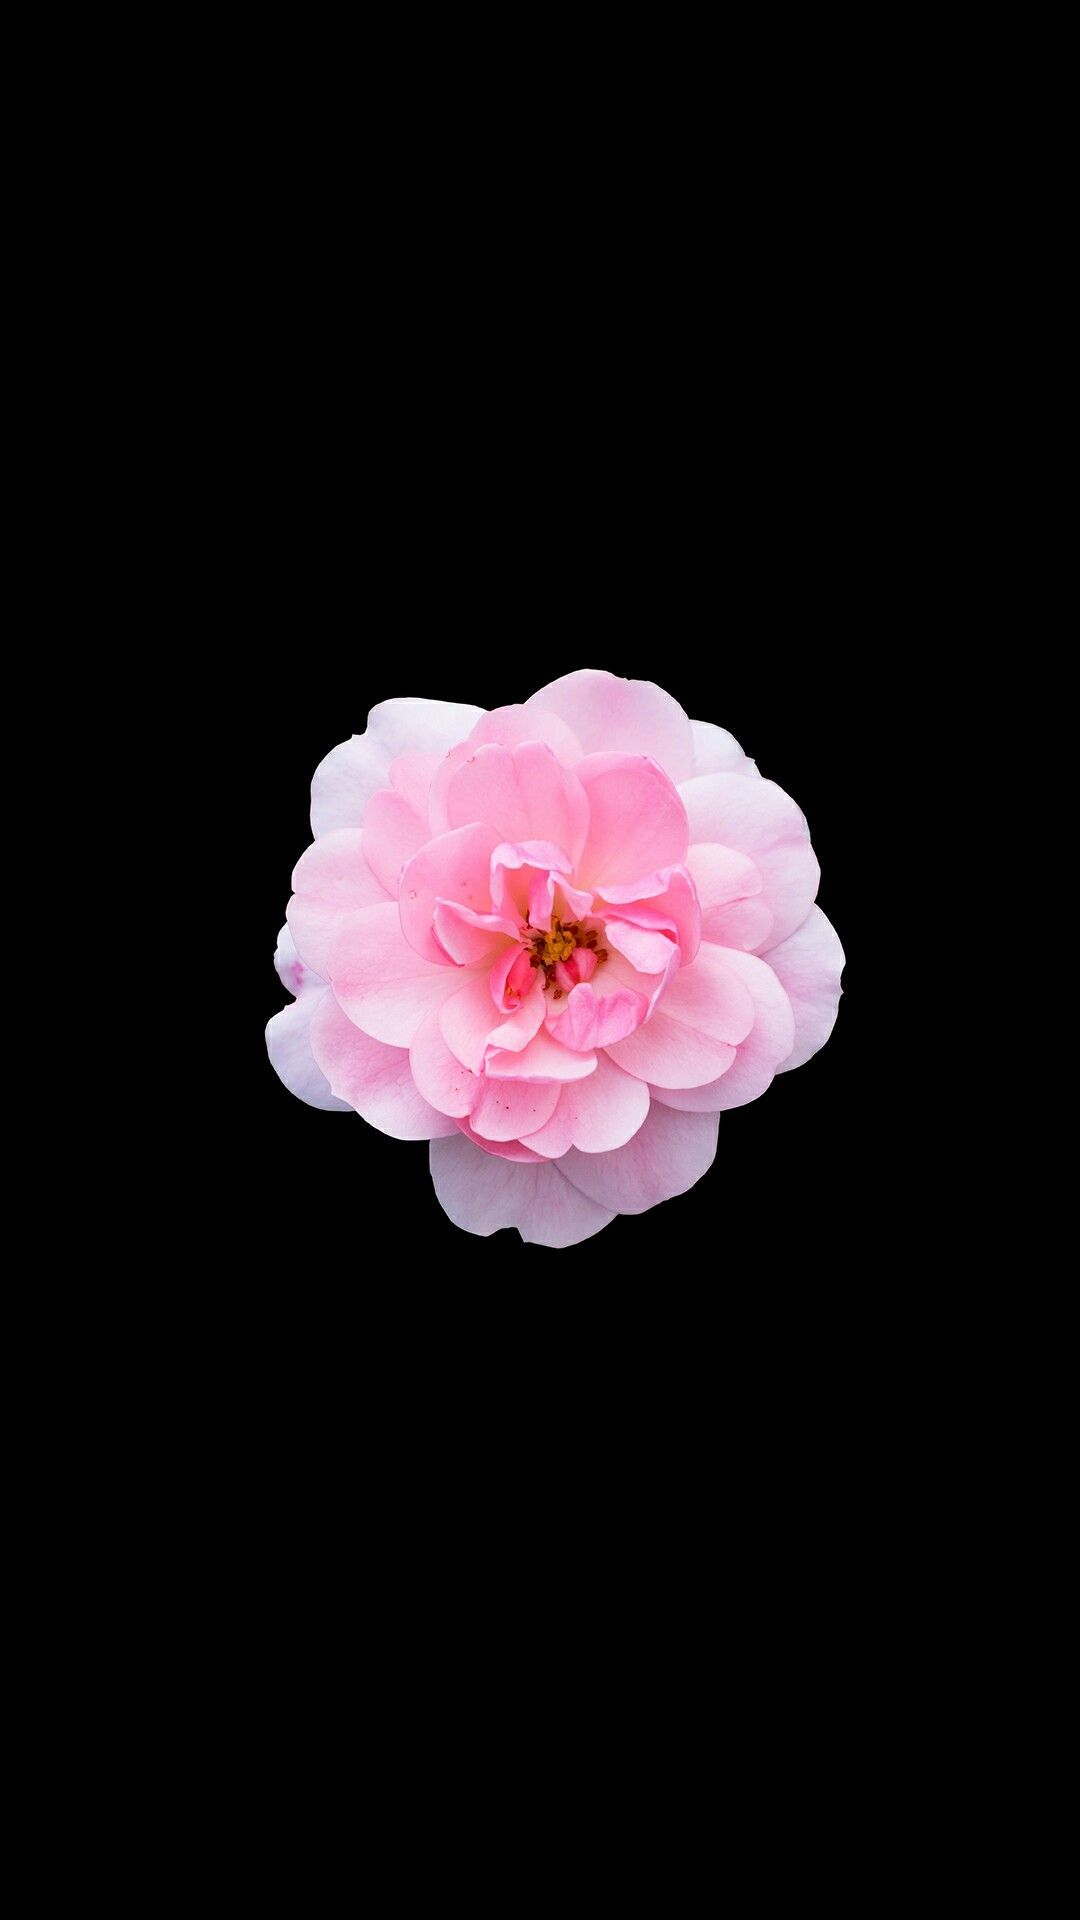 Pink Petal Flower Plant Peony Rose Pink Wallpaper Iphone Flower Background Iphone Flower Wallpaper